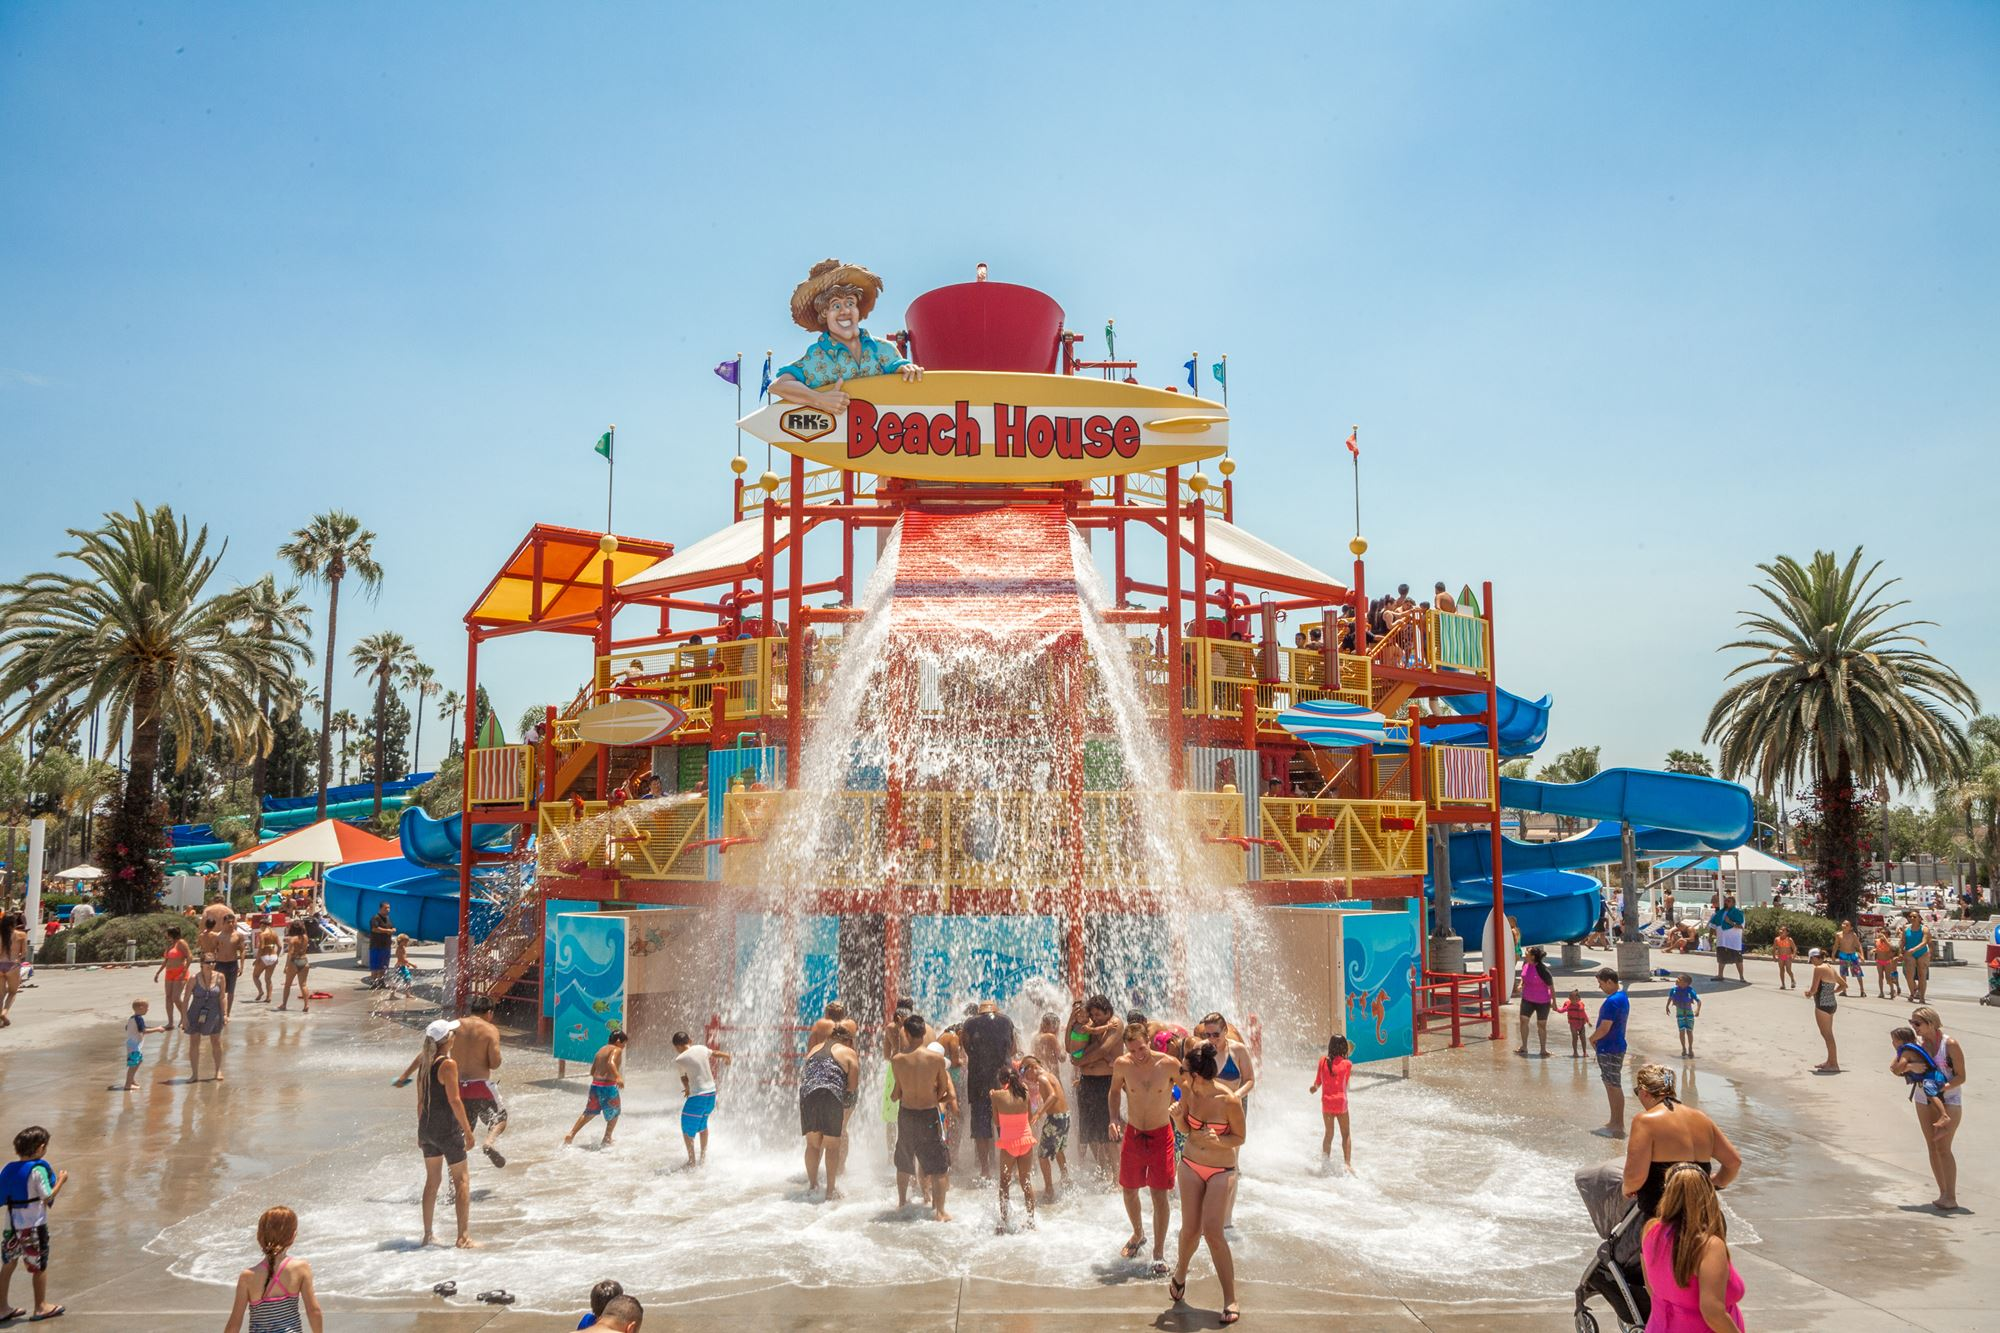 Water playground with children playing at Knott's Soak City in Buena Park, CA